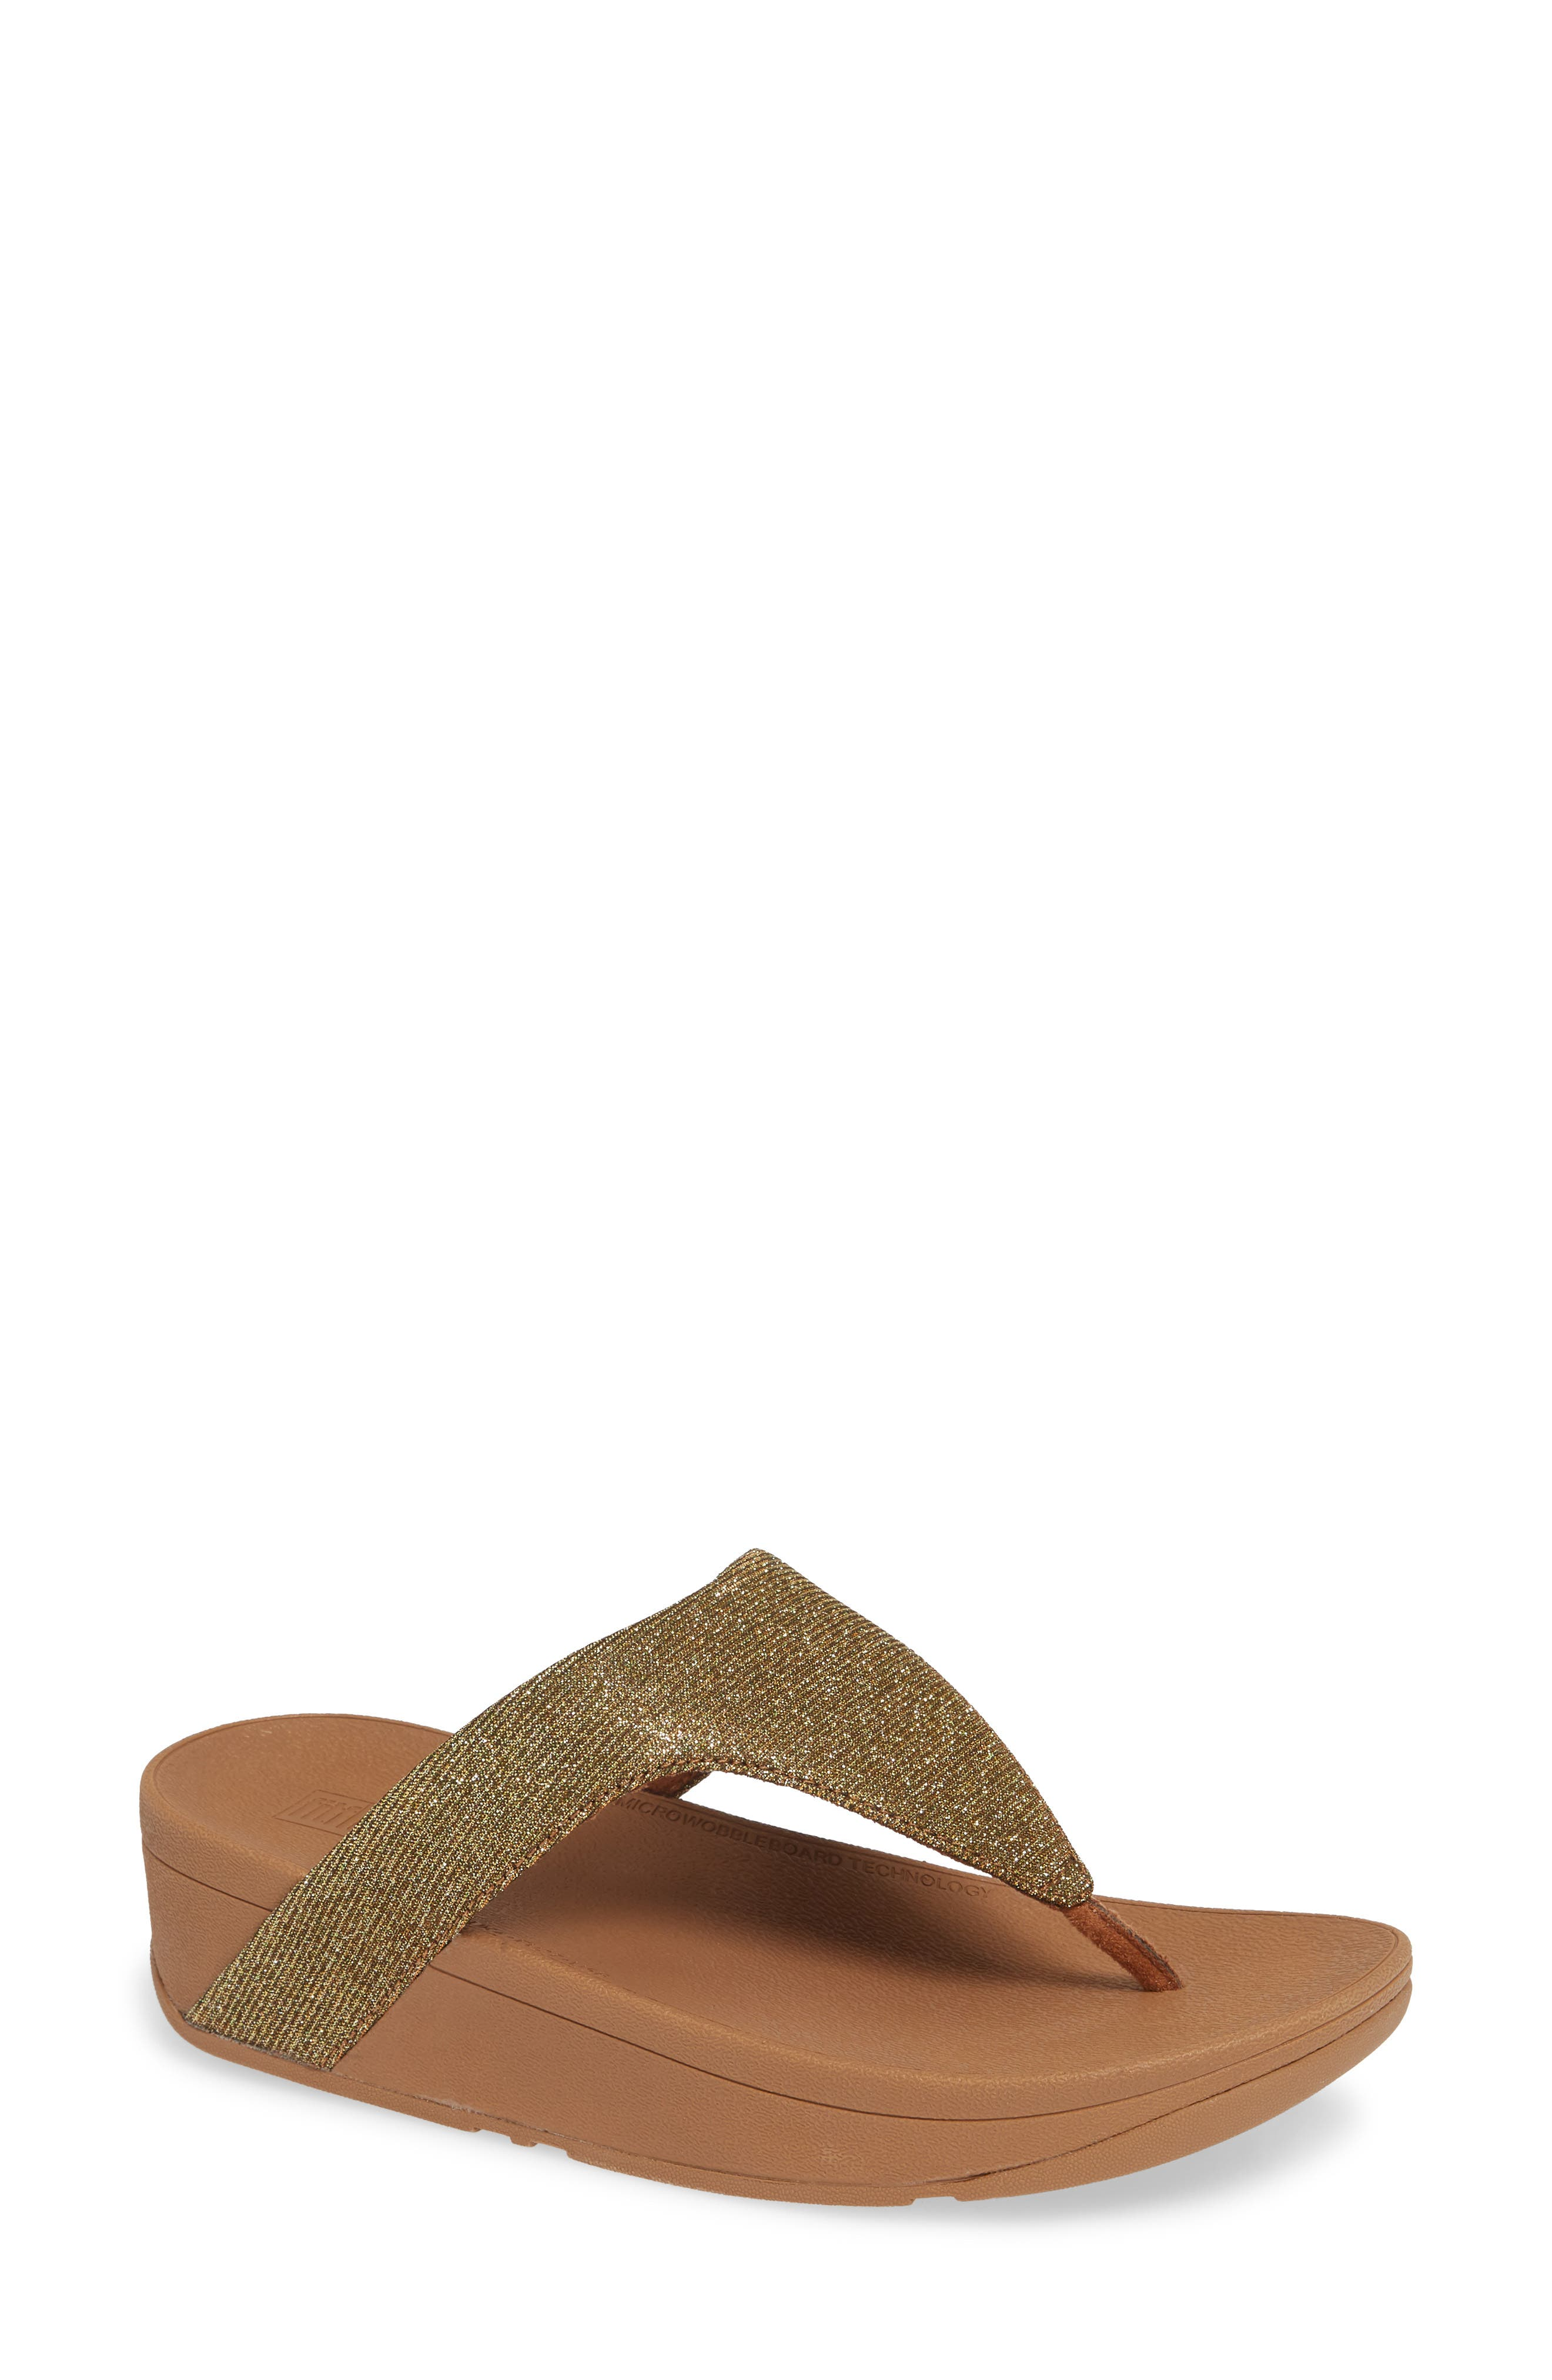 FITFLOP Lottie Glitzy Wedge Flip Flop, Main, color, ARTISAN GOLD